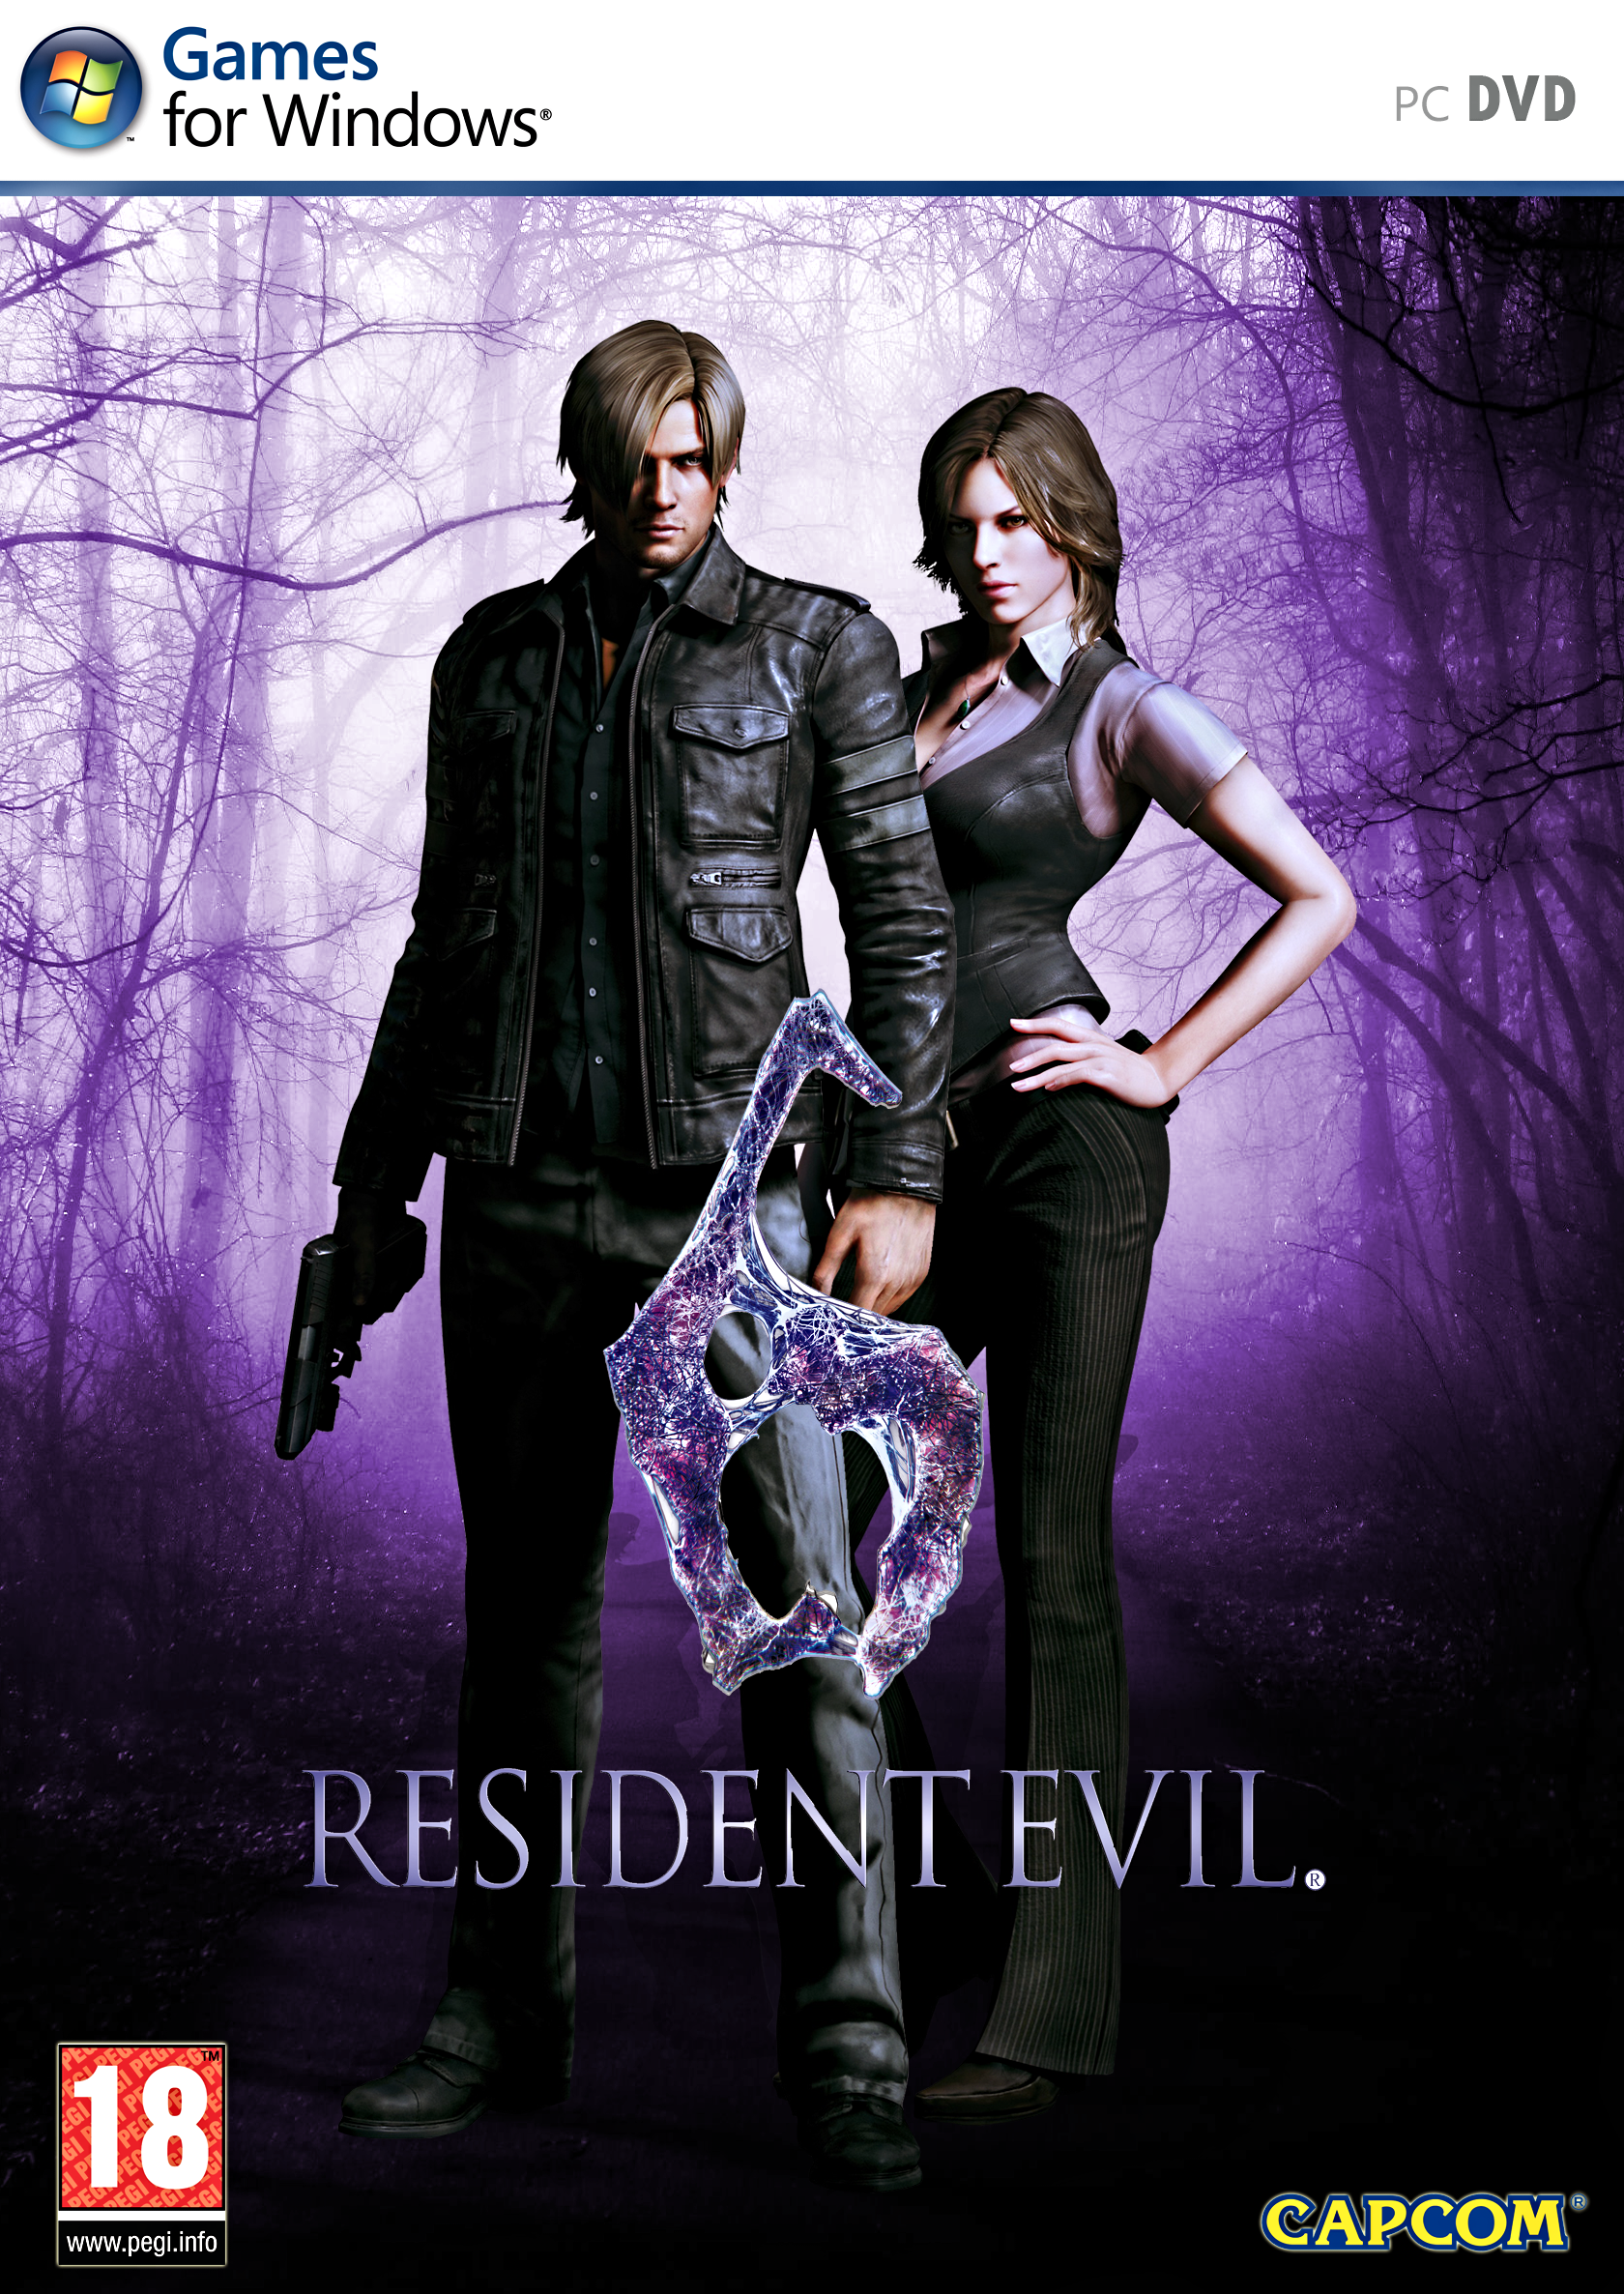 Image result for Resident Evil 6 cover pc